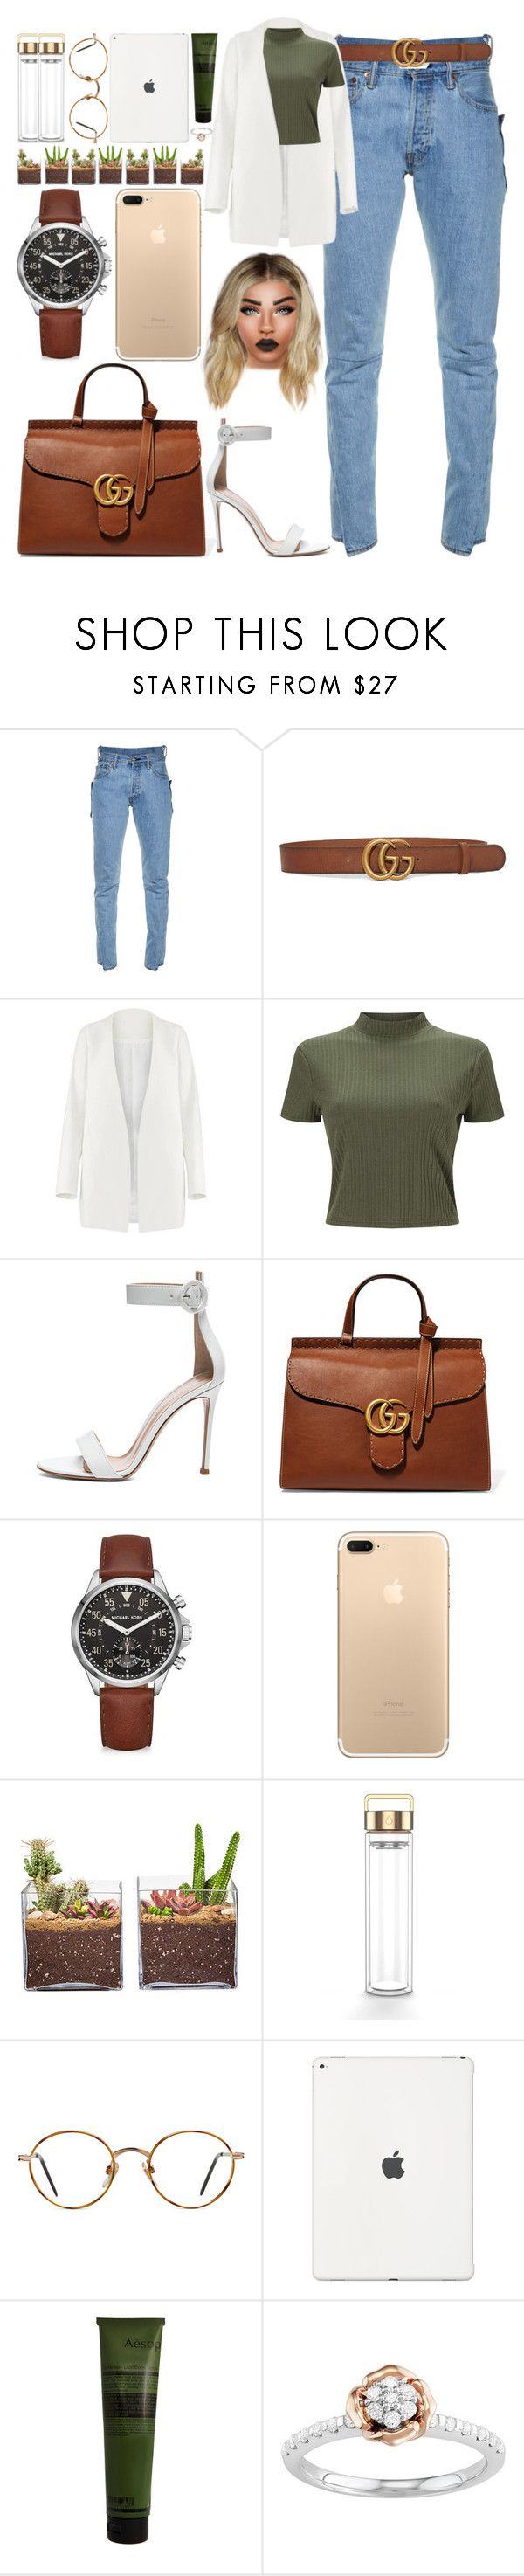 """*1857"" by asoc10 ❤ liked on Polyvore featuring Vetements, Gucci, Non, Miss Selfridge, Gianvito Rossi, Michael Kors, Shop Succulents, GlassesUSA, Aesop and 18"